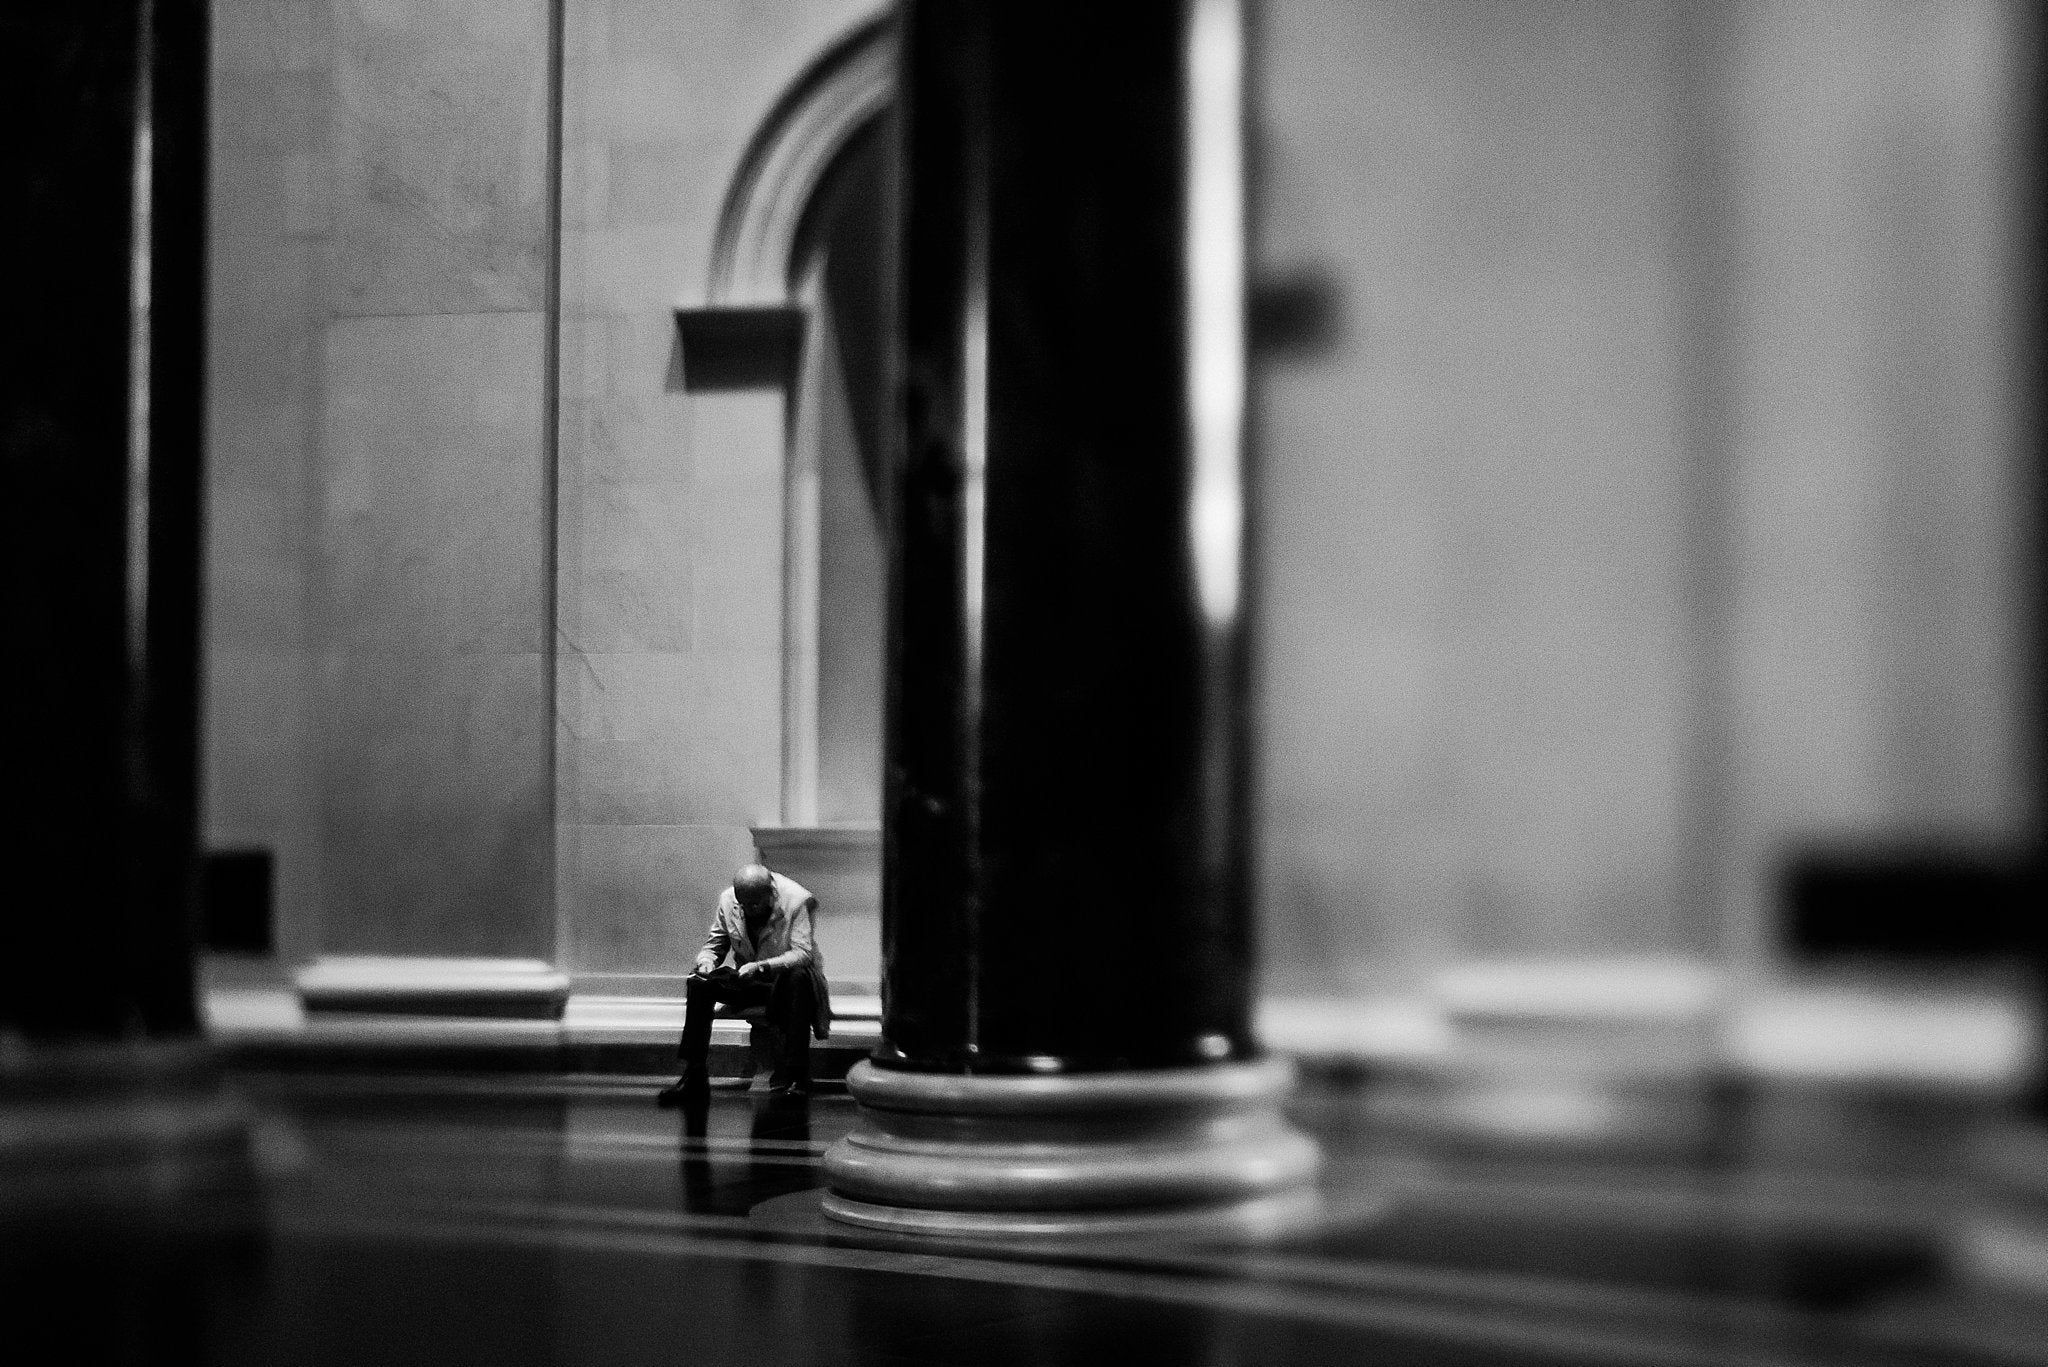 bald man sitting in a hall with pillars and high ceilings black and white shadows stone building Chelsea Lyn Lensbaby Challenge